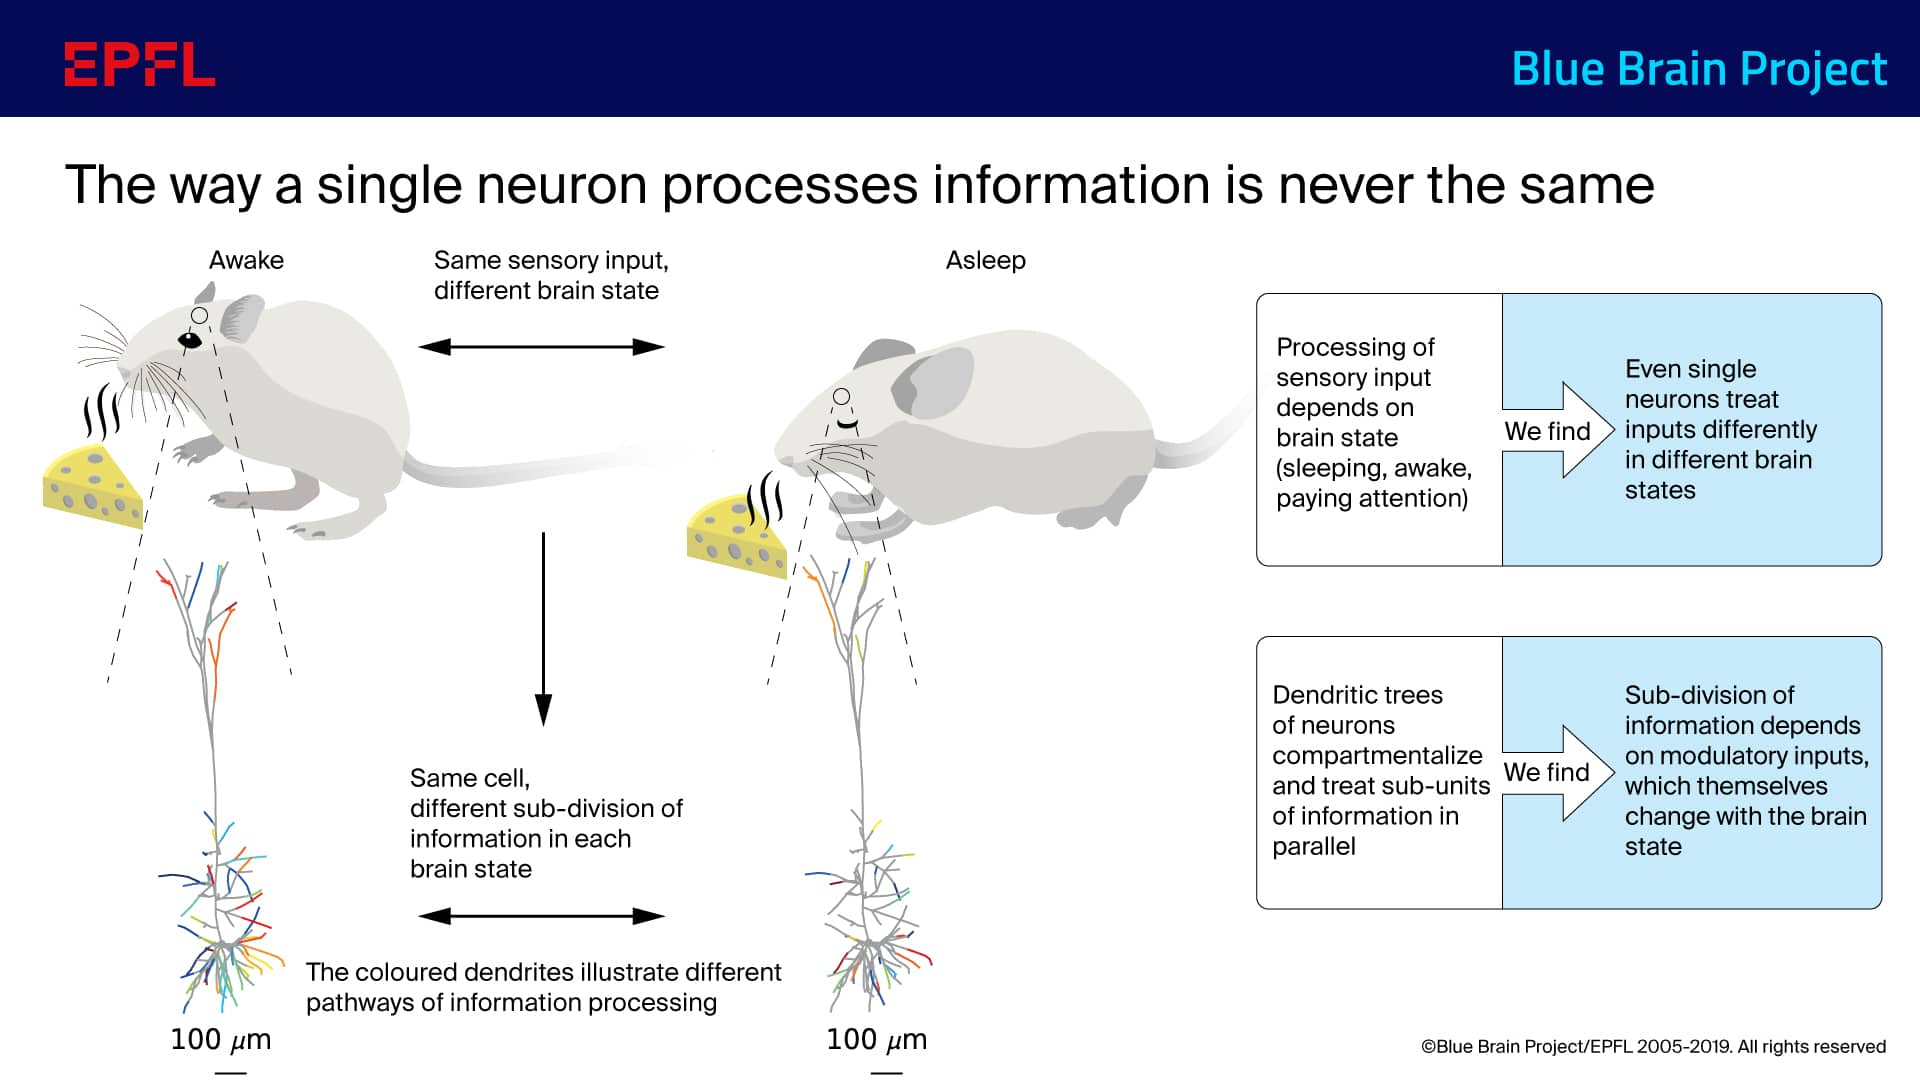 The way a single neuron processes information is never the same